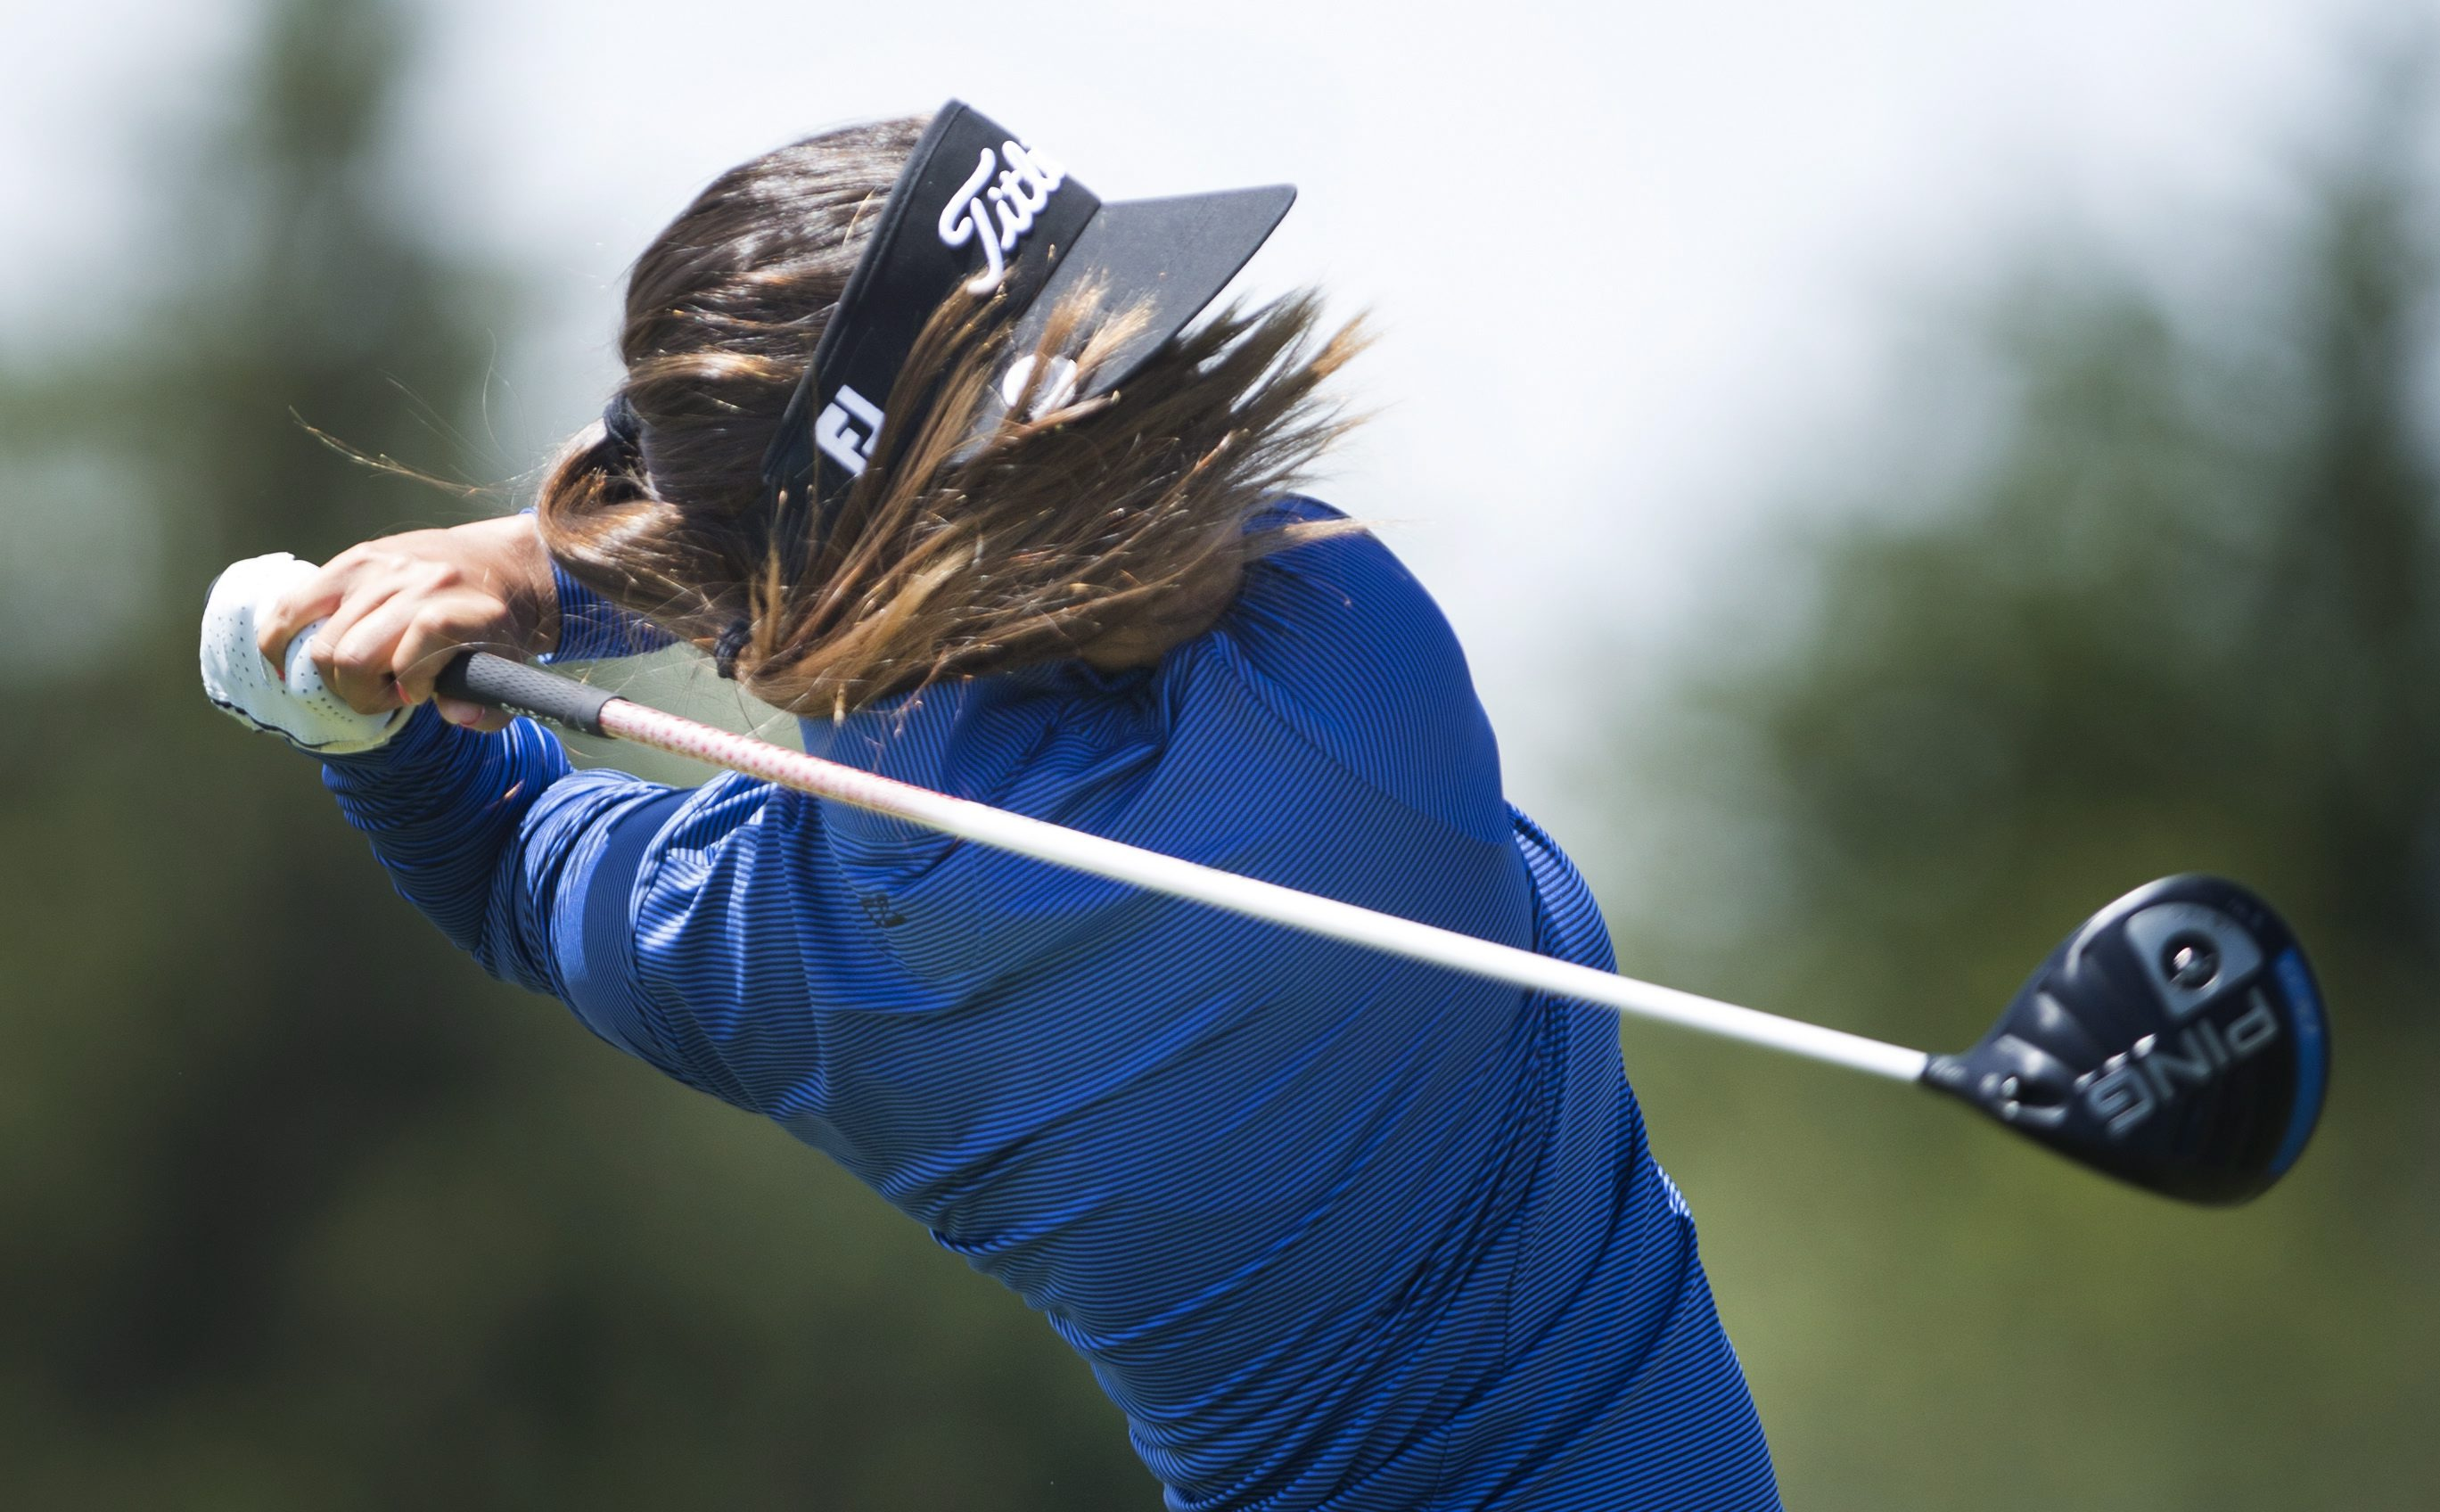 Mariajo Uribe, of Colombia, hits off the sixth tee during the third round of the 2015 Manulife LPGA Classic, Saturday, June 6, 2015 in Cambridge, Ontario. (Peter Power/The Canadian Press via AP) MANDATORY